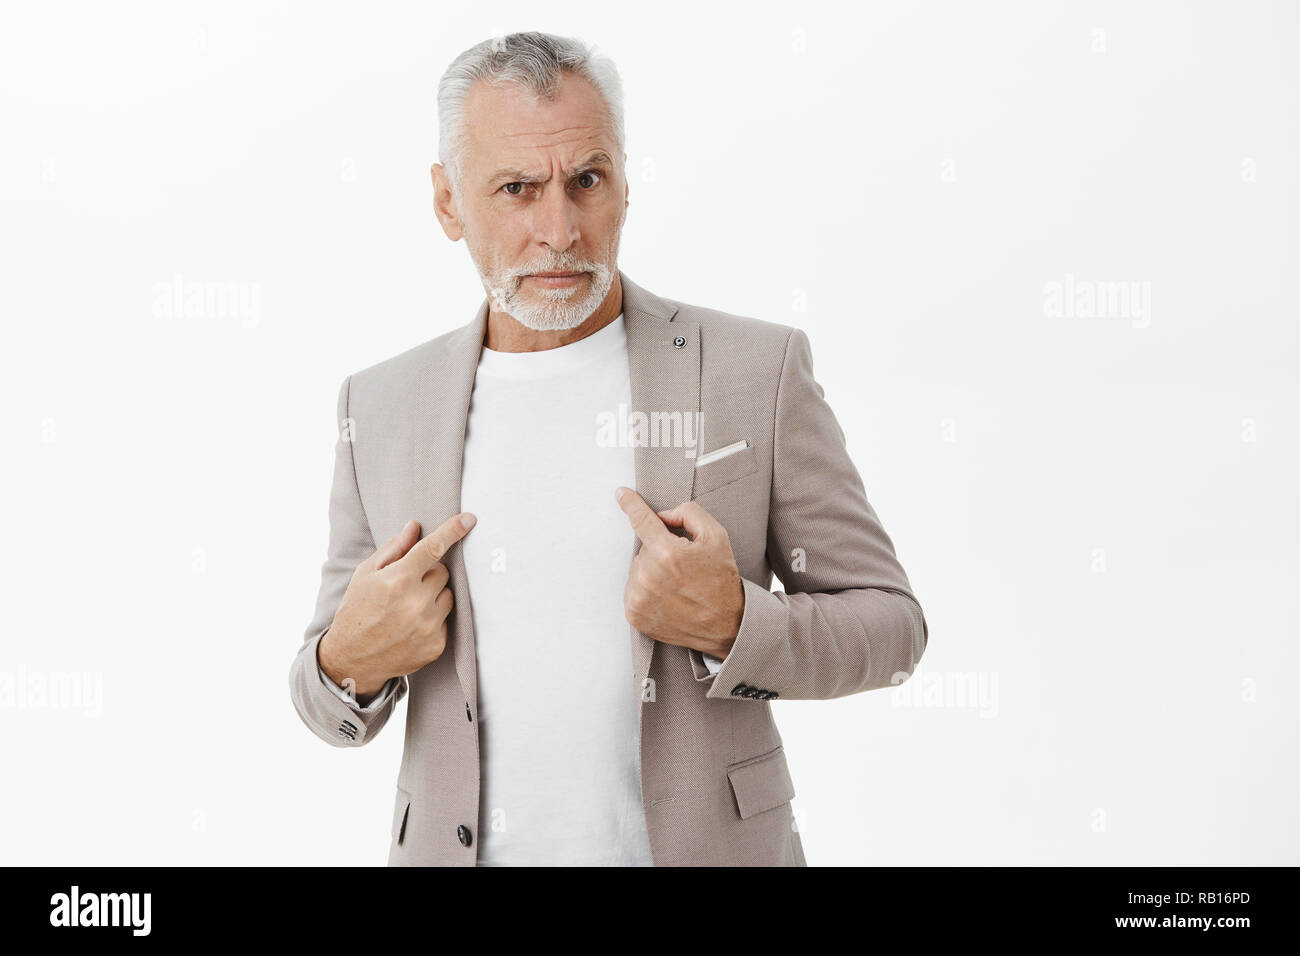 Portrait of senior man being accused in commiting crime standing insulted and intense pointing at himself with serious displeased and offended expression asking question at camera over gray wall - Stock Image